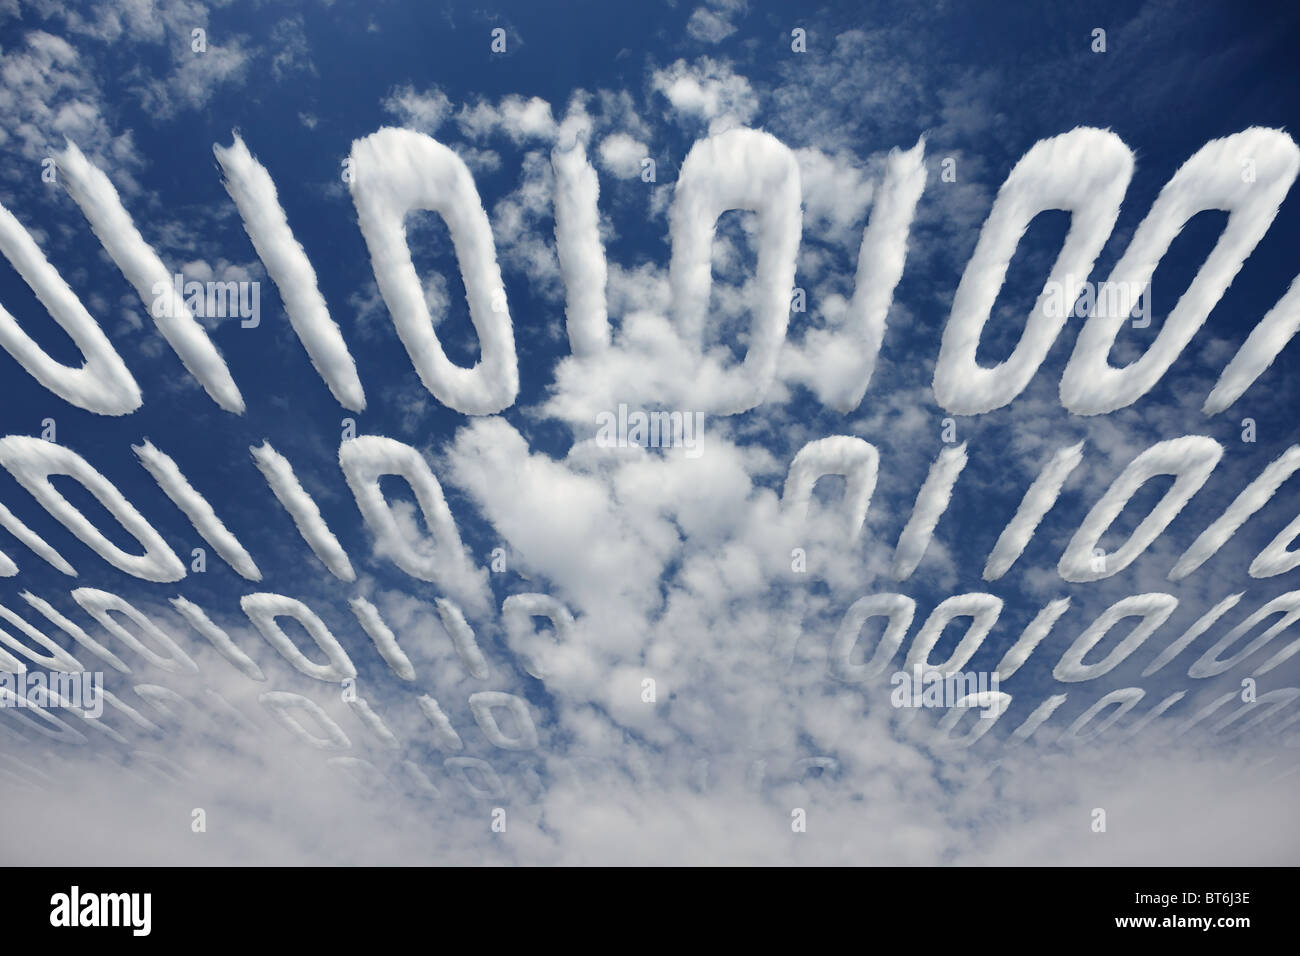 Cloudy binary code transmitted in sky - concept of electronic communication and information - Stock Image